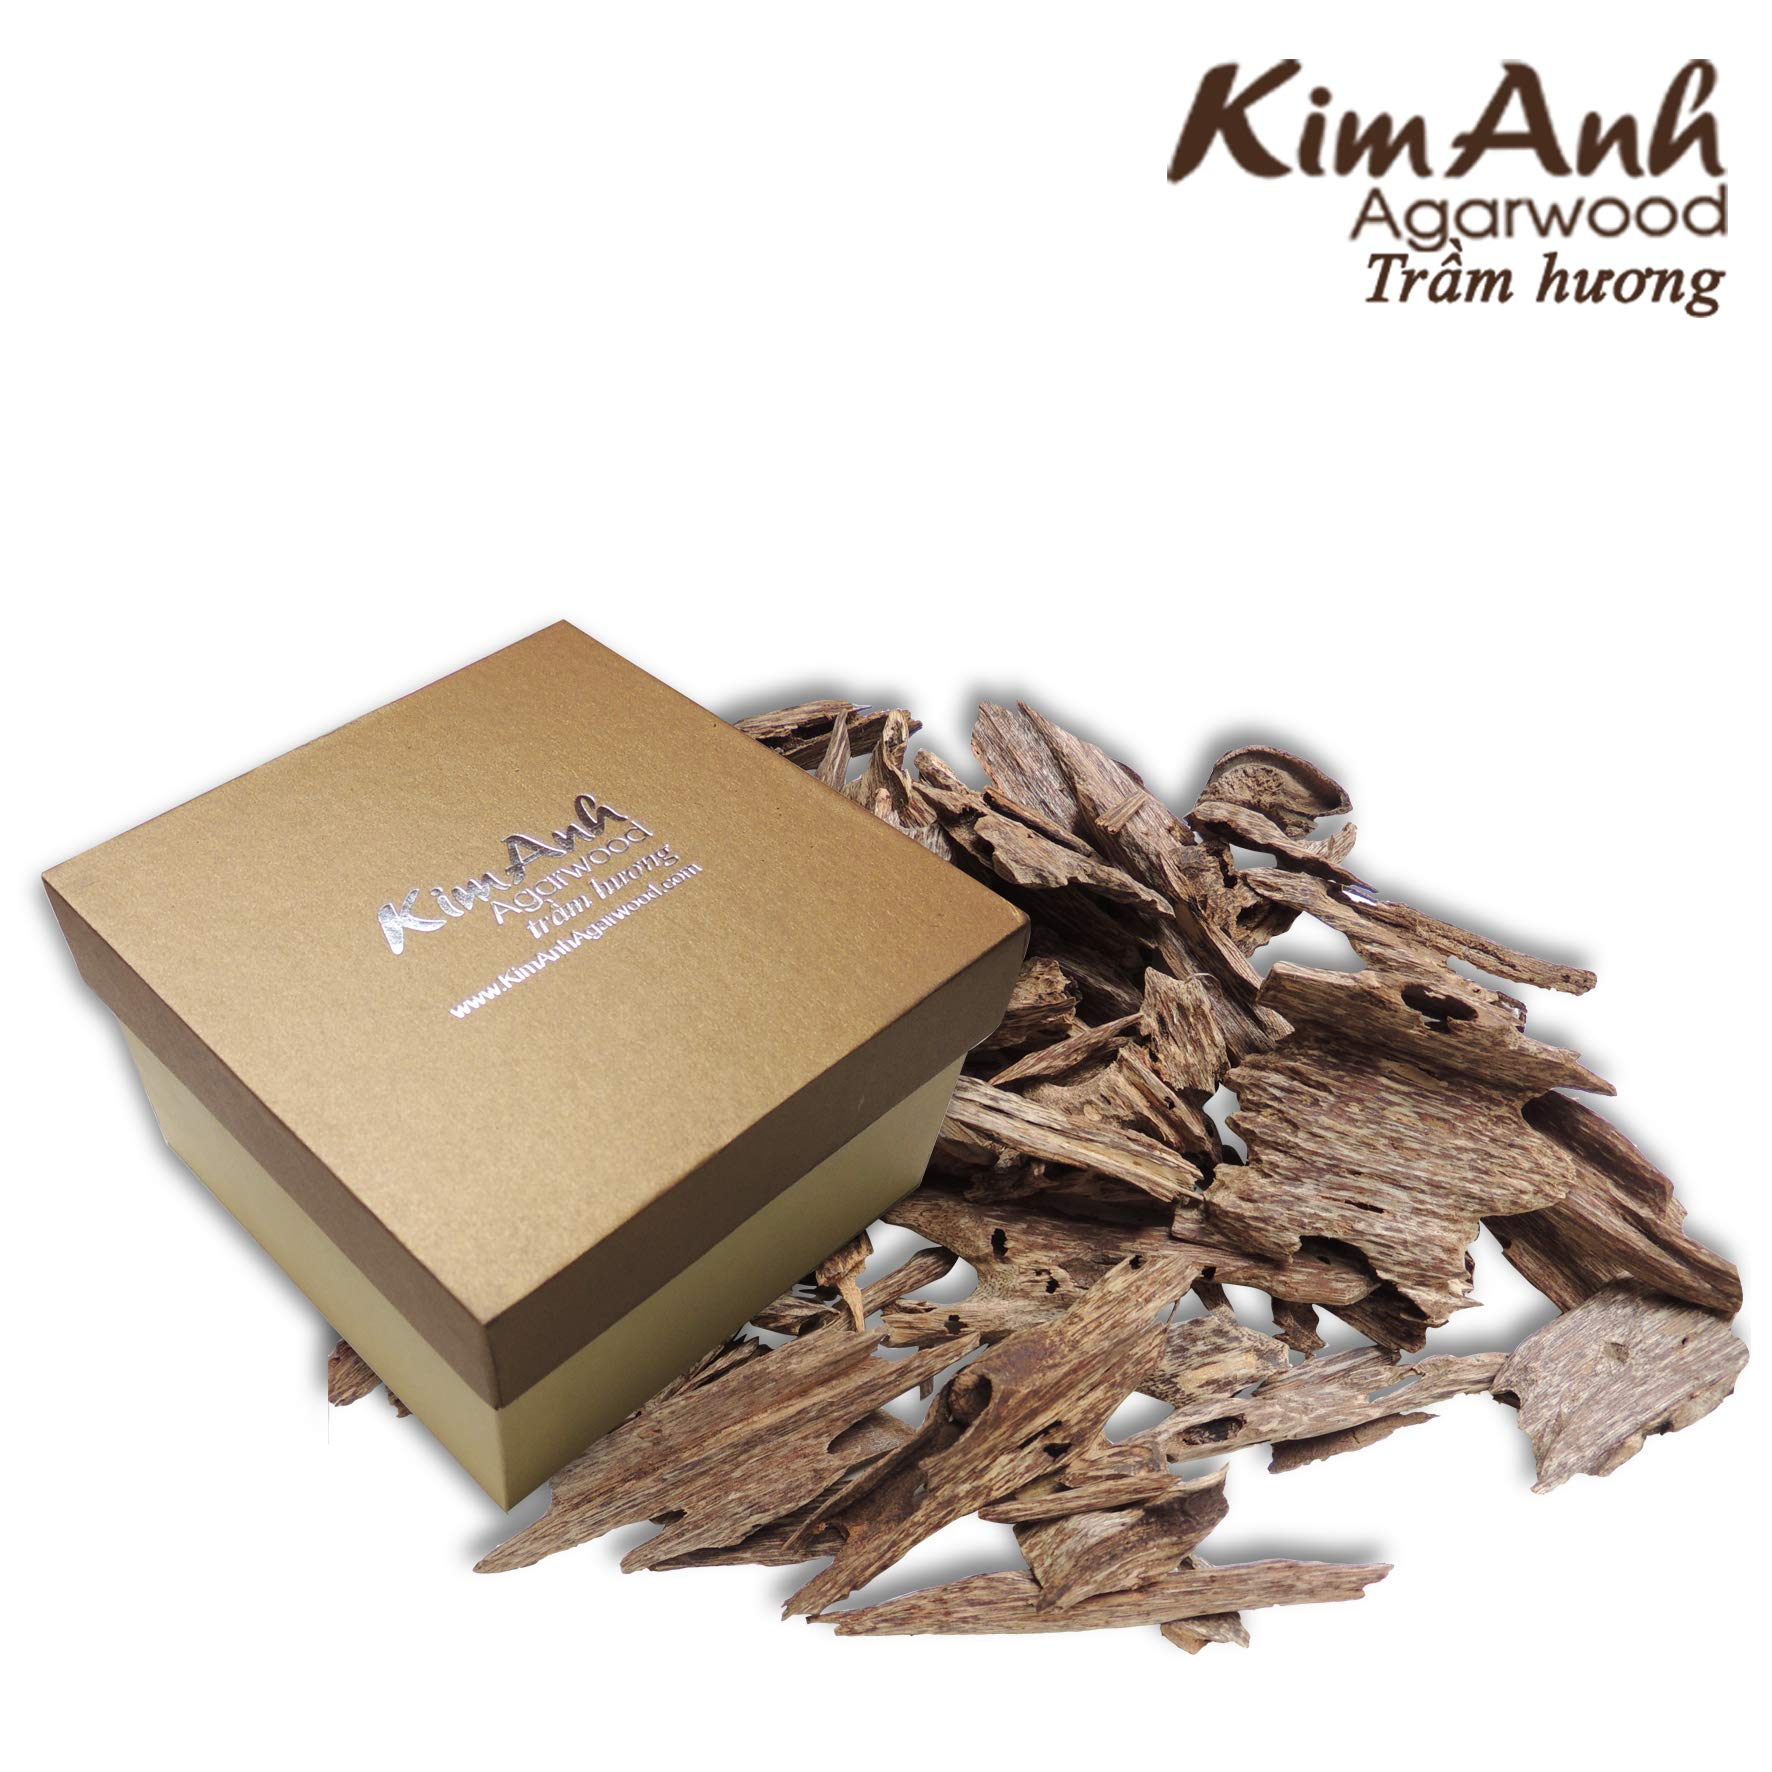 Kim Anh Agarwood chips - Vietnam natural agarwood chips - Pure Agarwood Aloeswood chips - Oud wood chips - Oudh chips for - charcoal or electric incense burner- 30g by Kim Anh Agarwood